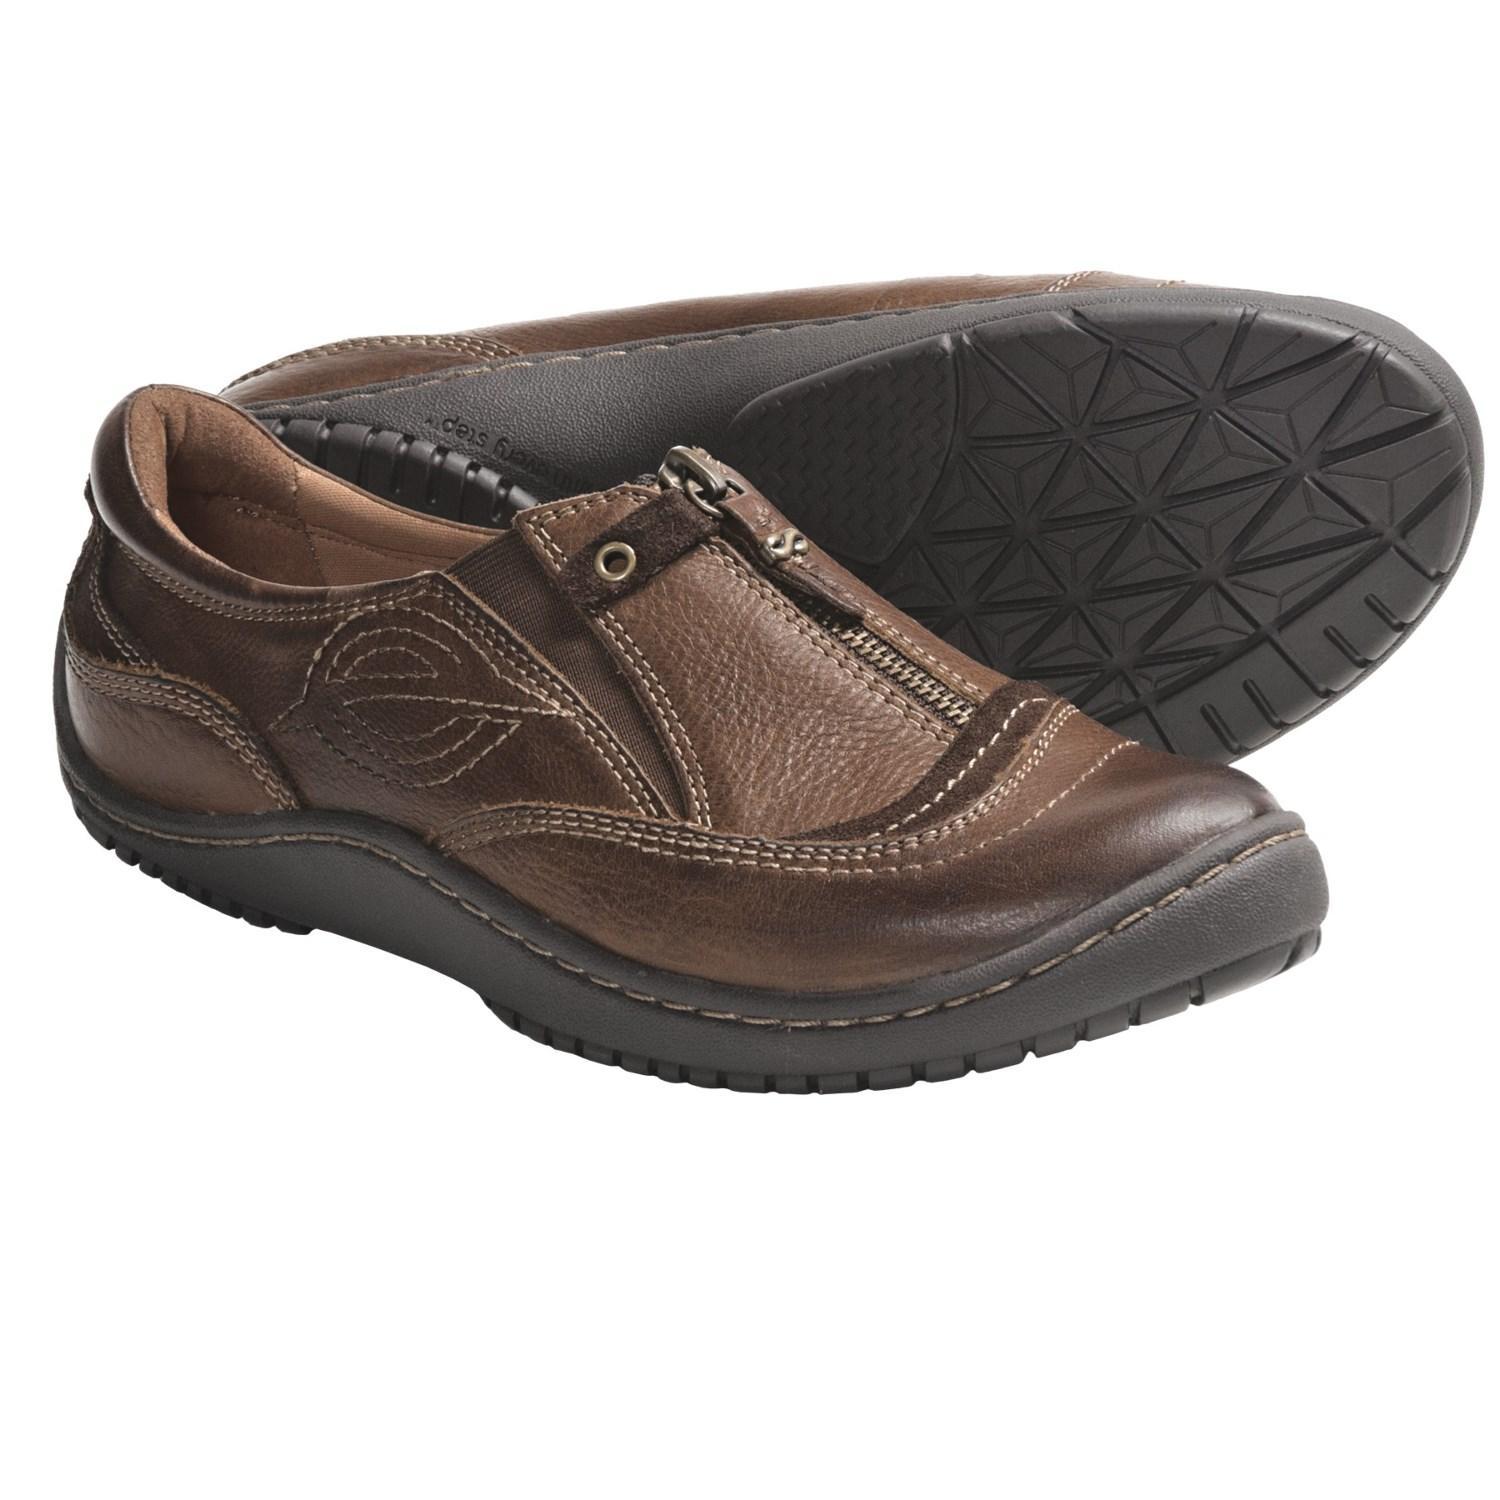 kalso earth shoes clearance